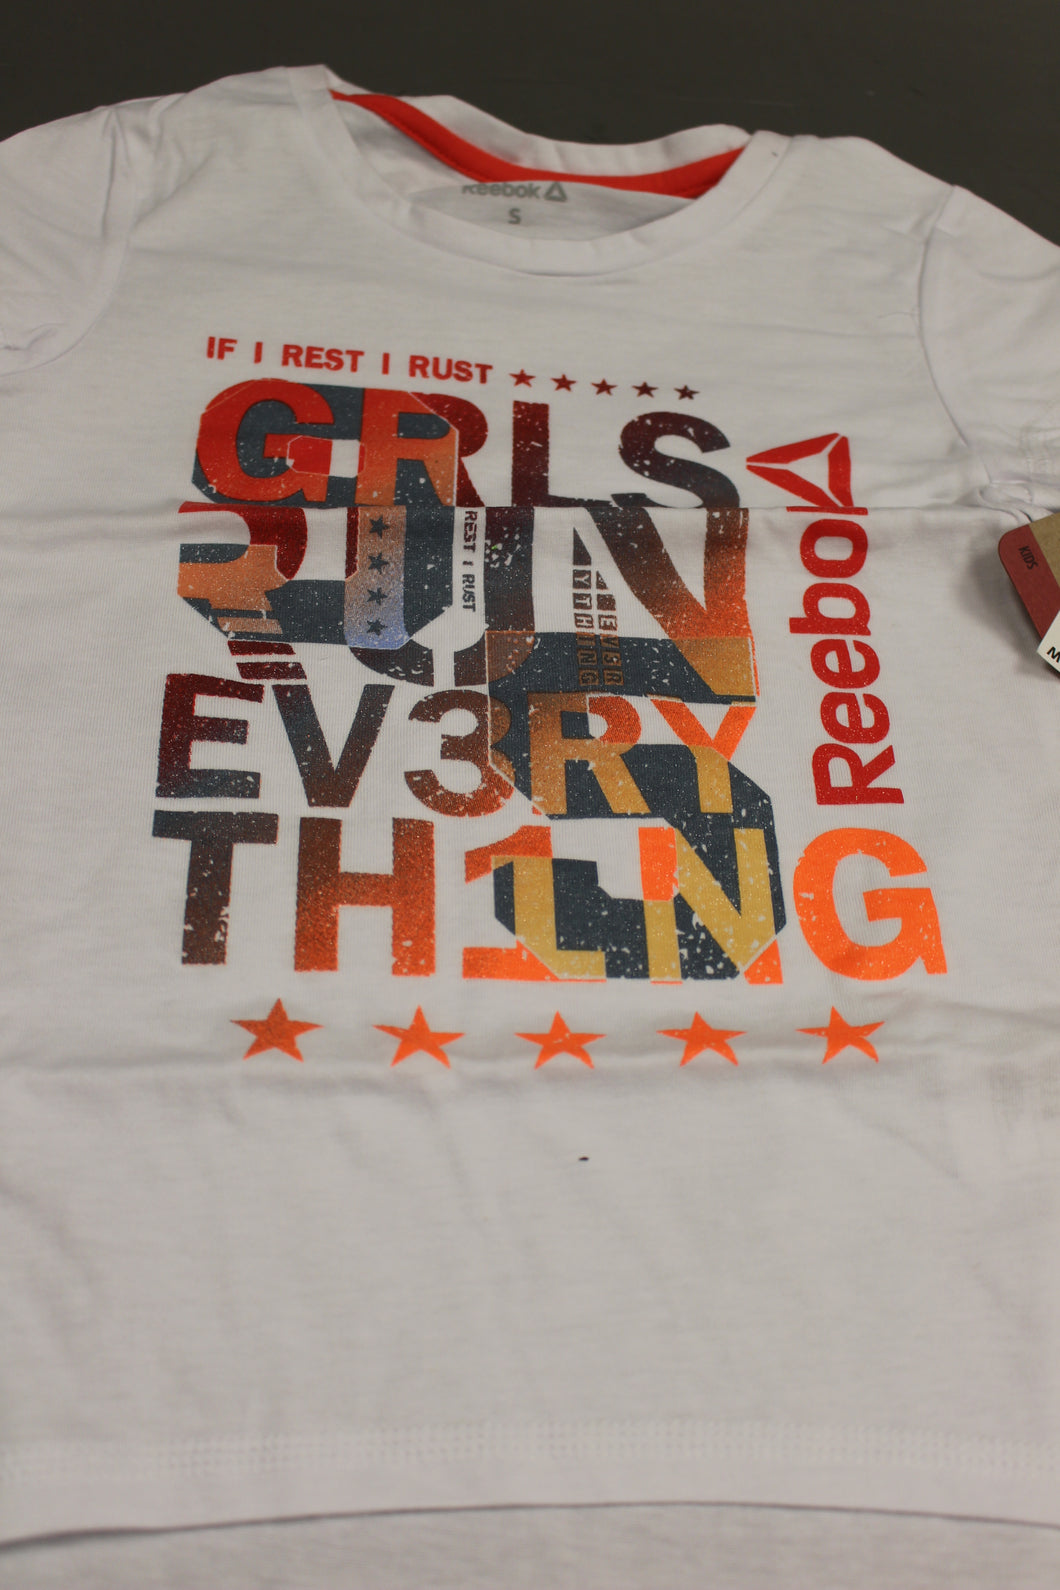 Reebok If I Rest I Rust / GRLS Run Ev3ry Th1ng T-Shirt, Small, New